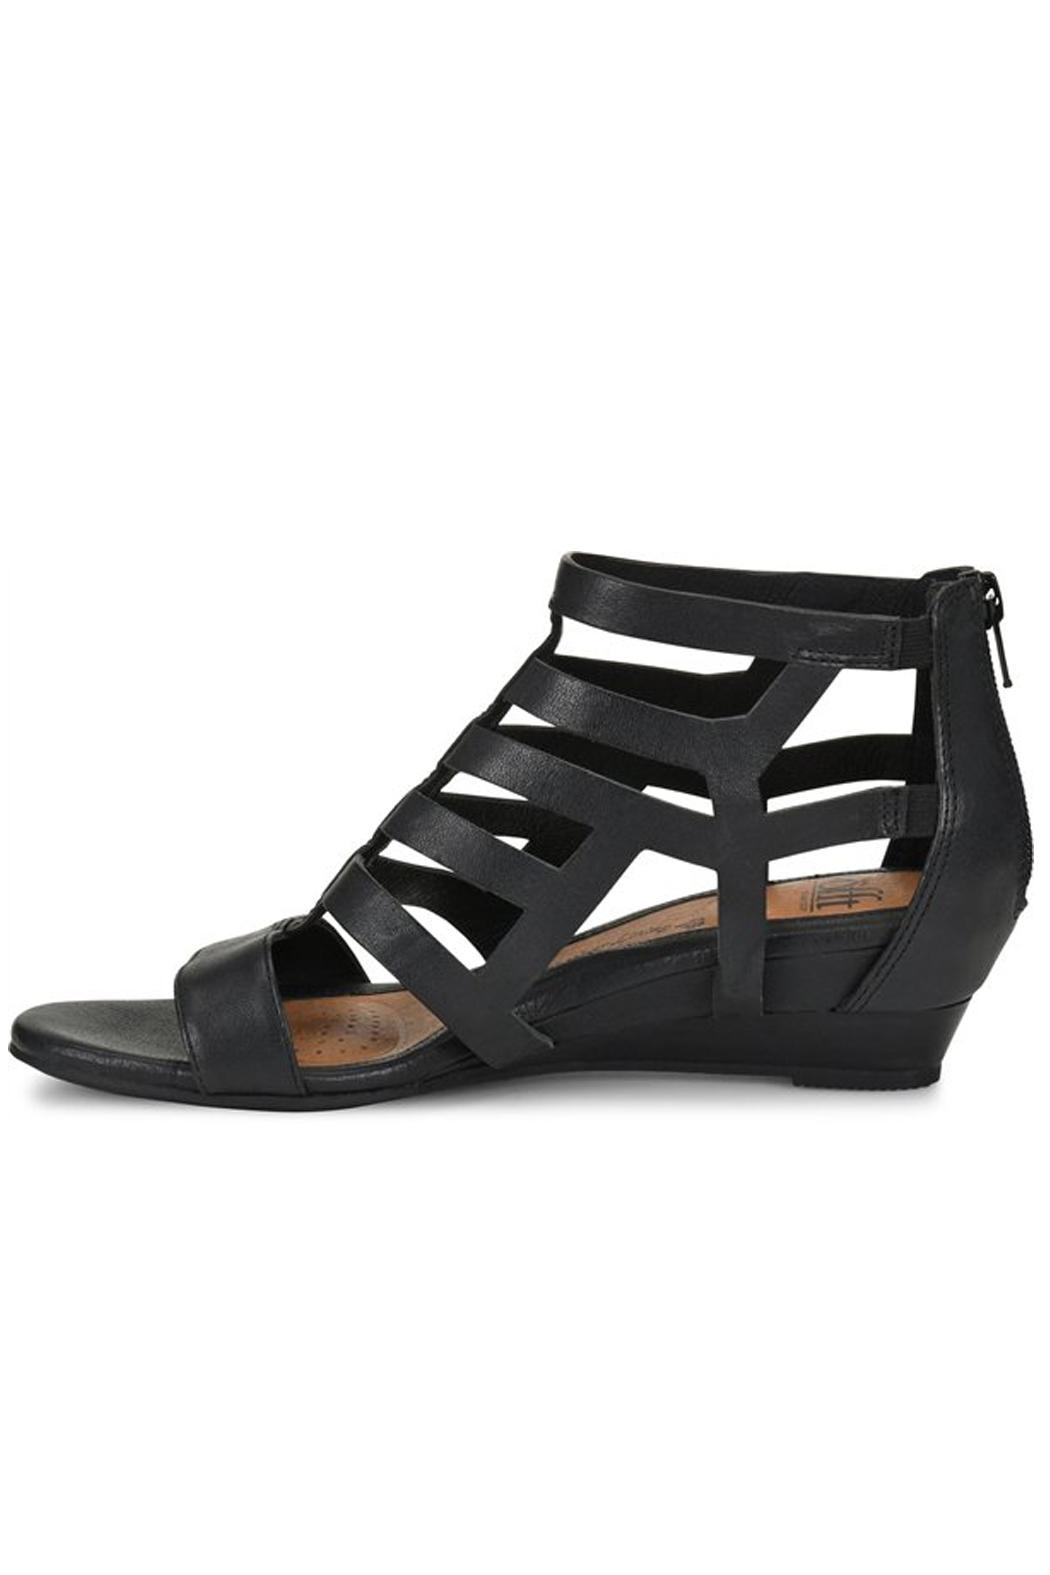 Sofft Ravello Black Wedge - Main Image